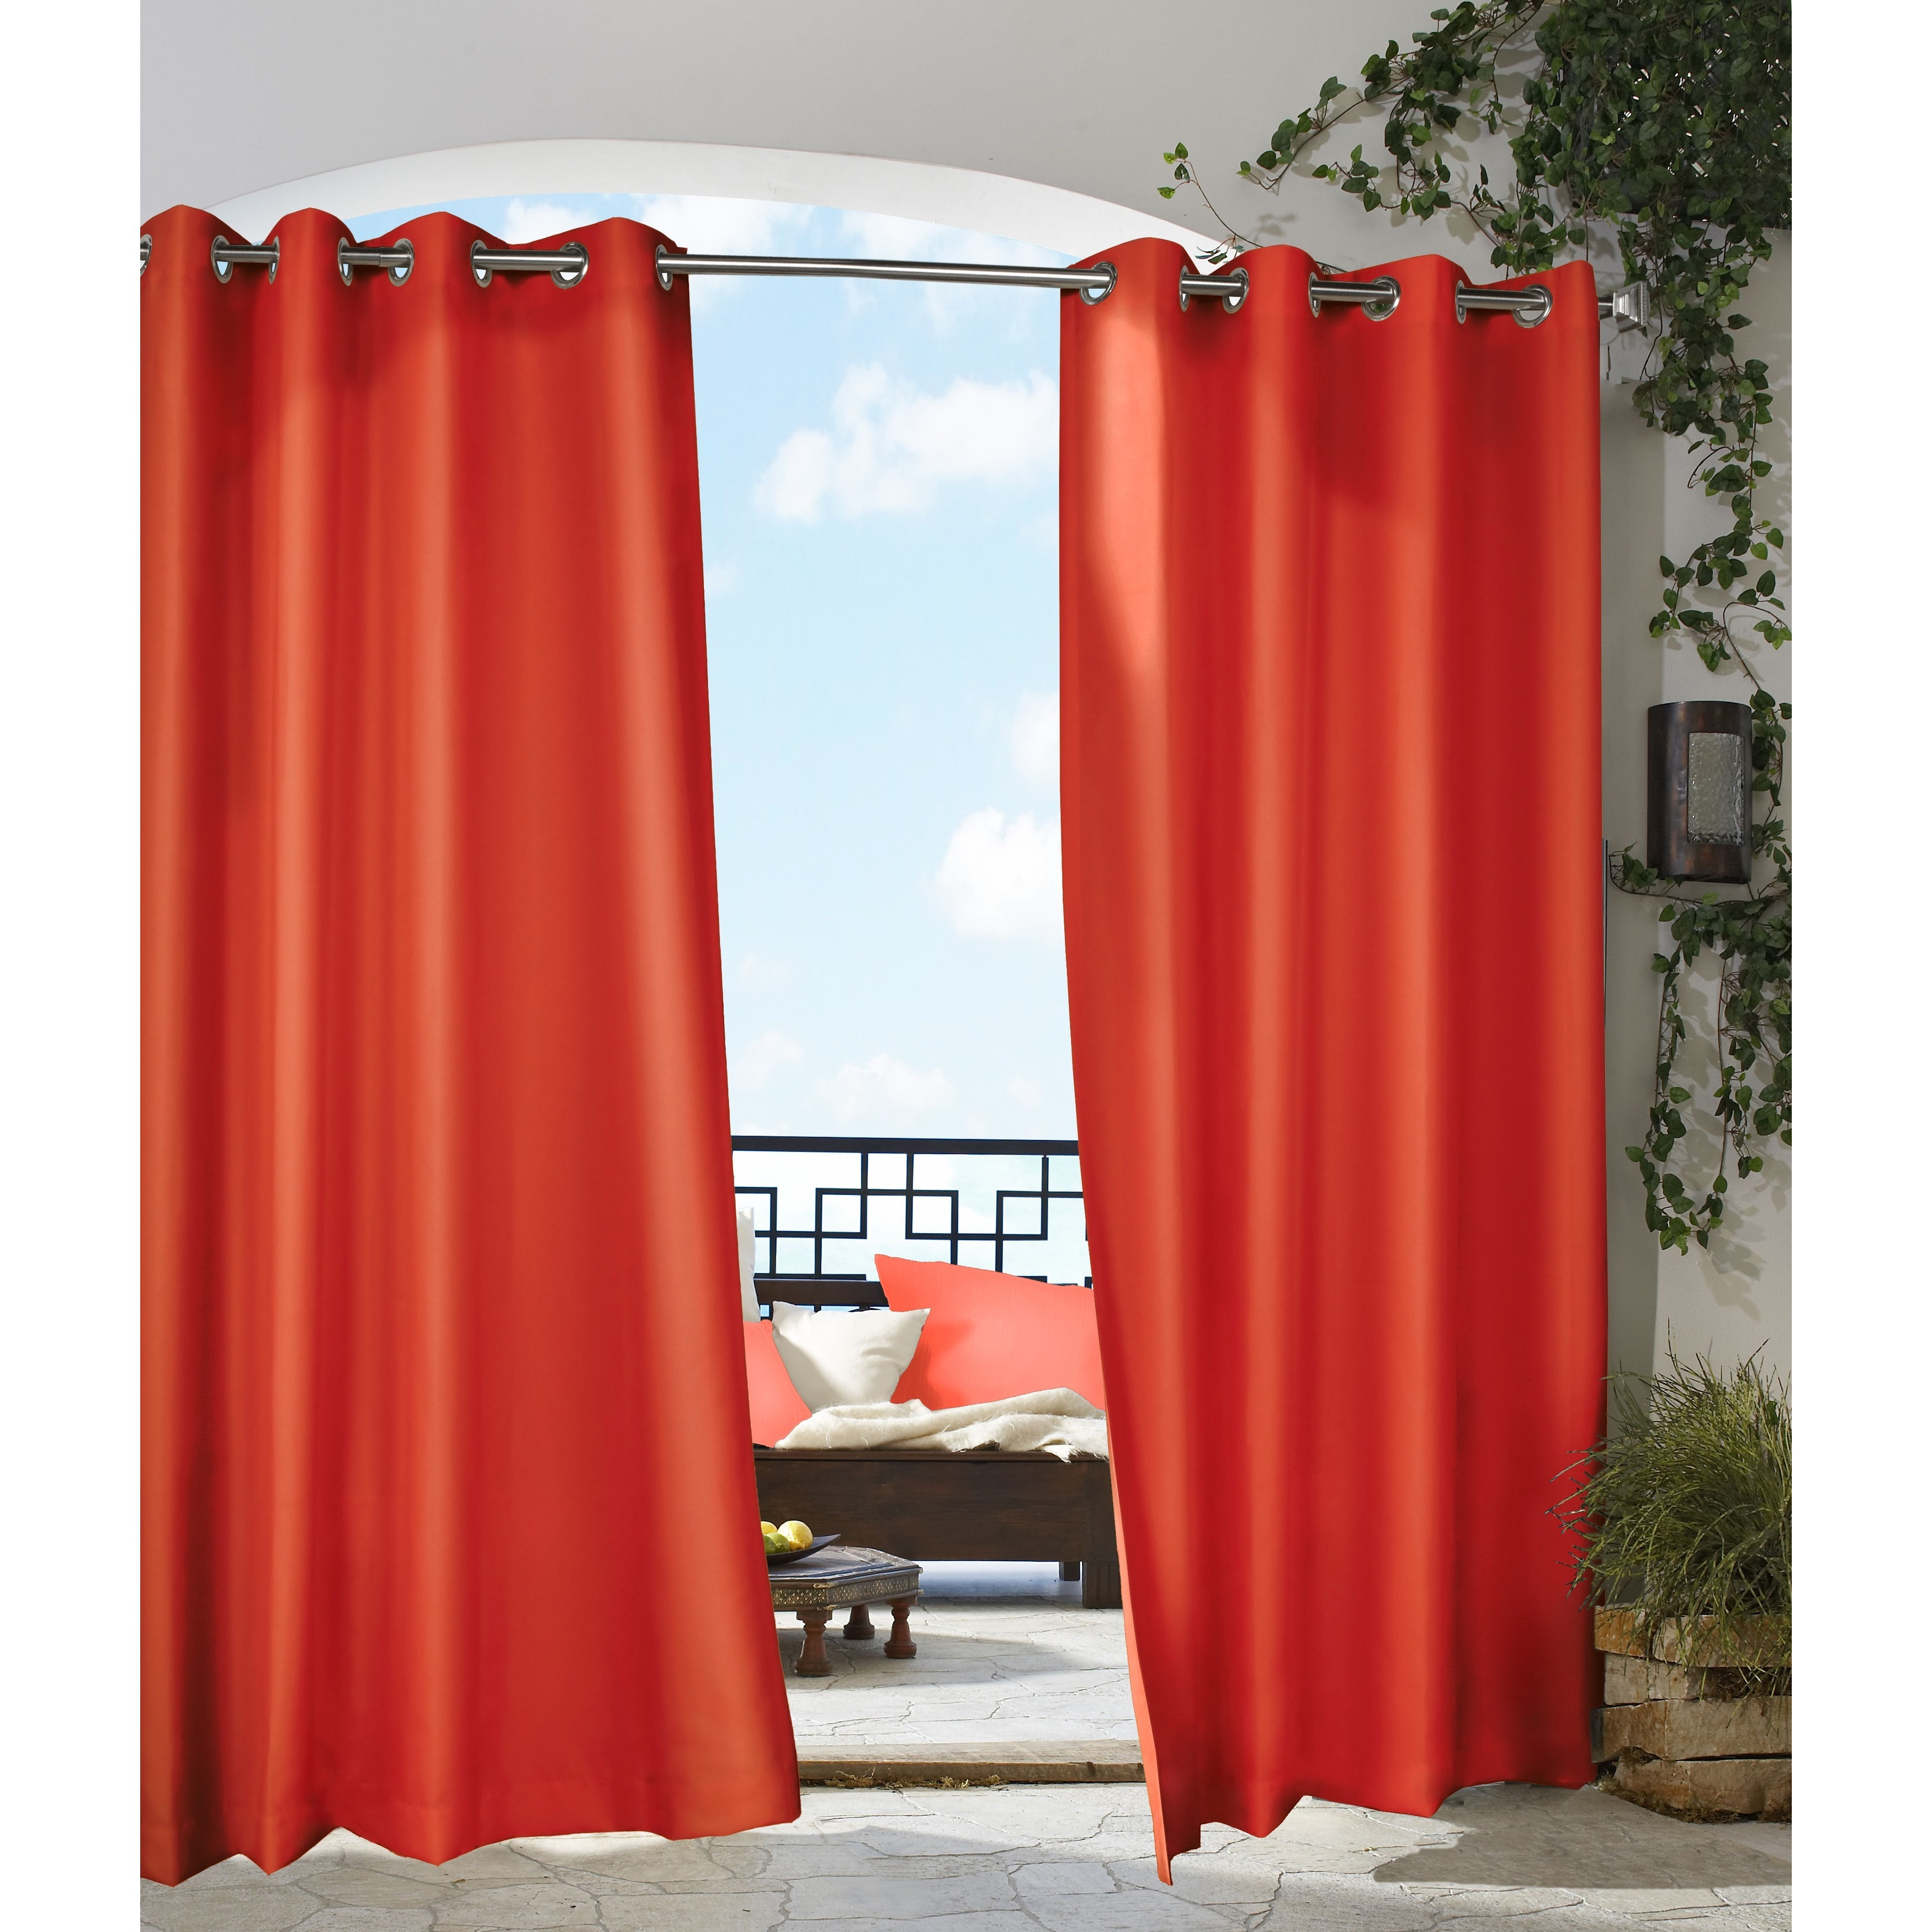 home garden solid curtains panel key free shipping overstock cheap curtain product outdoor today parasol largo indoor